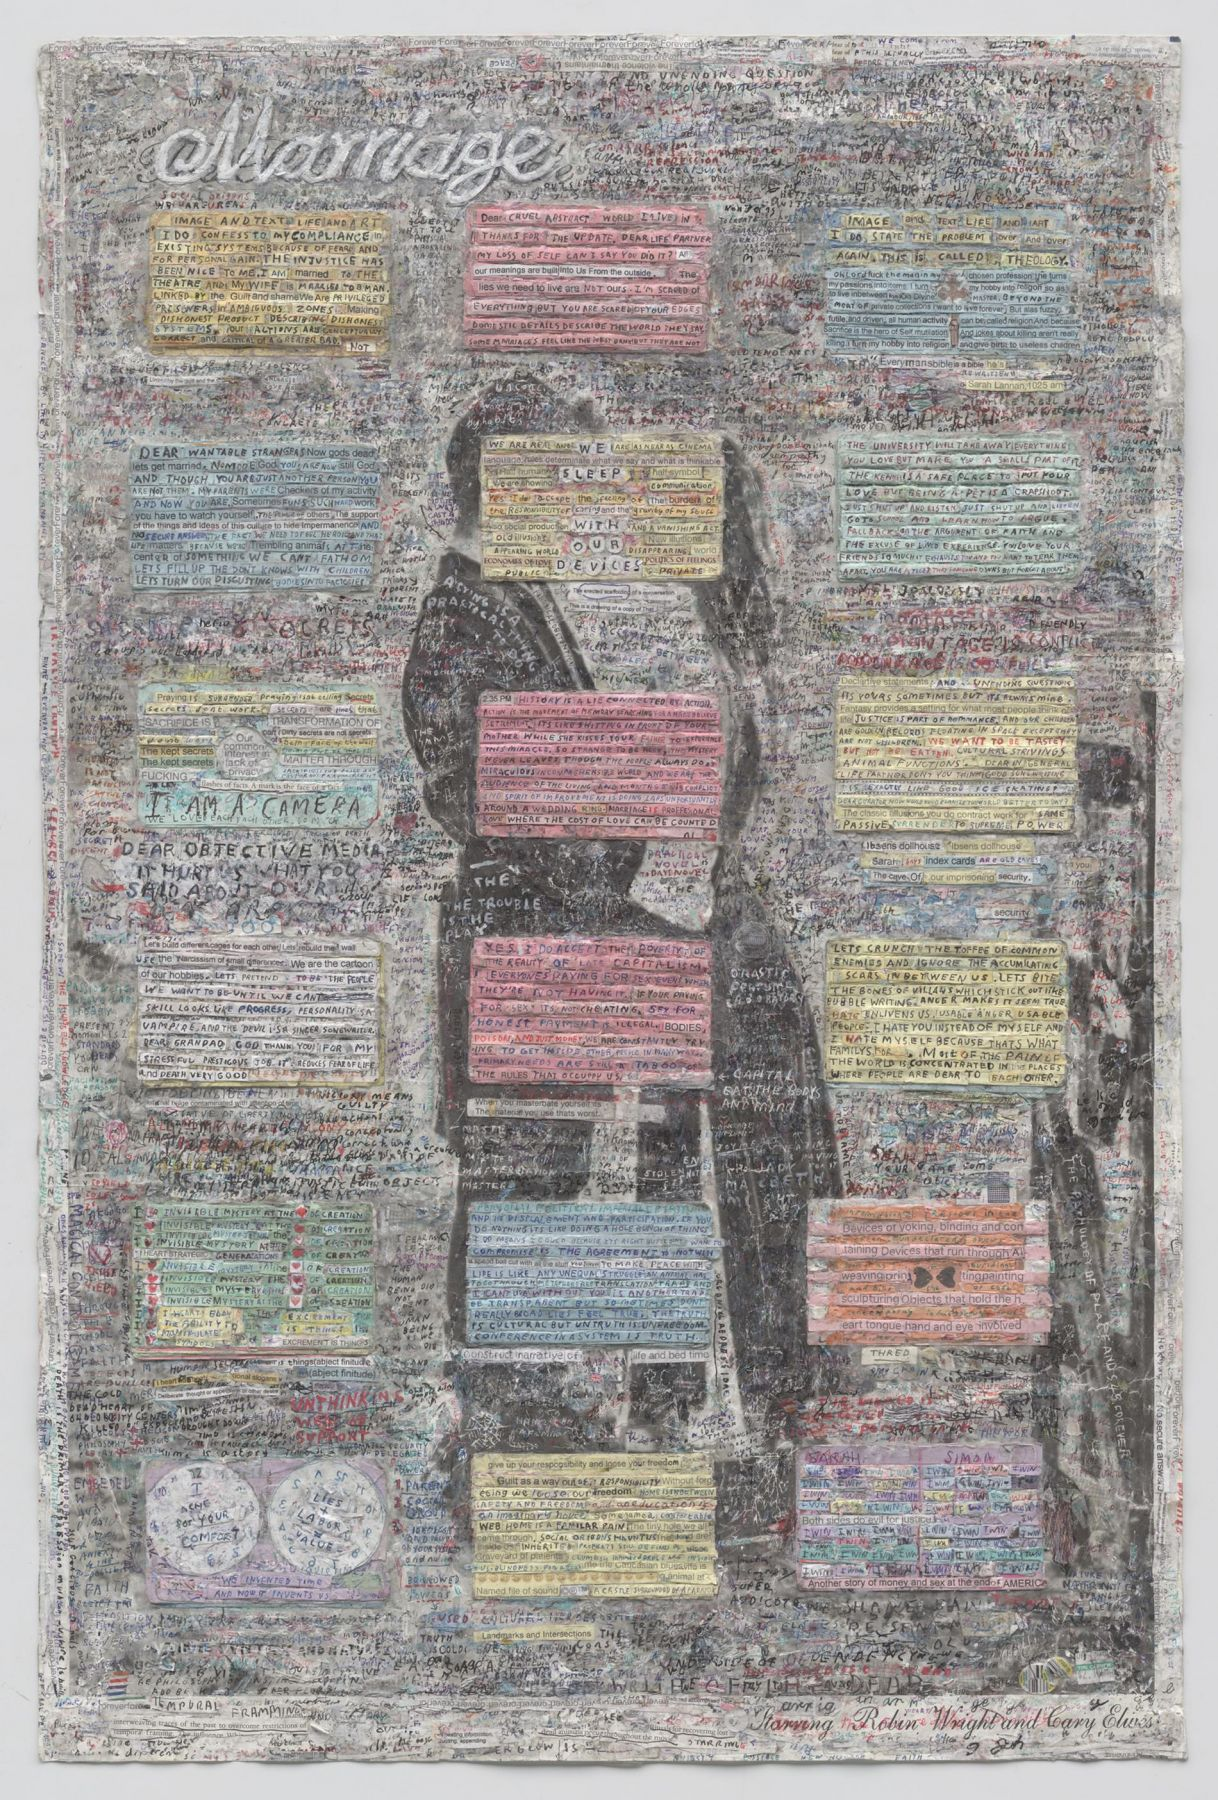 , SIMON EVANS, Marriage, 2014 - 15, Found film poster. index cards, pen, paint, tape and glue, 35 3/4 x 23 3/4 in.(90.8 x 60.3 cm)